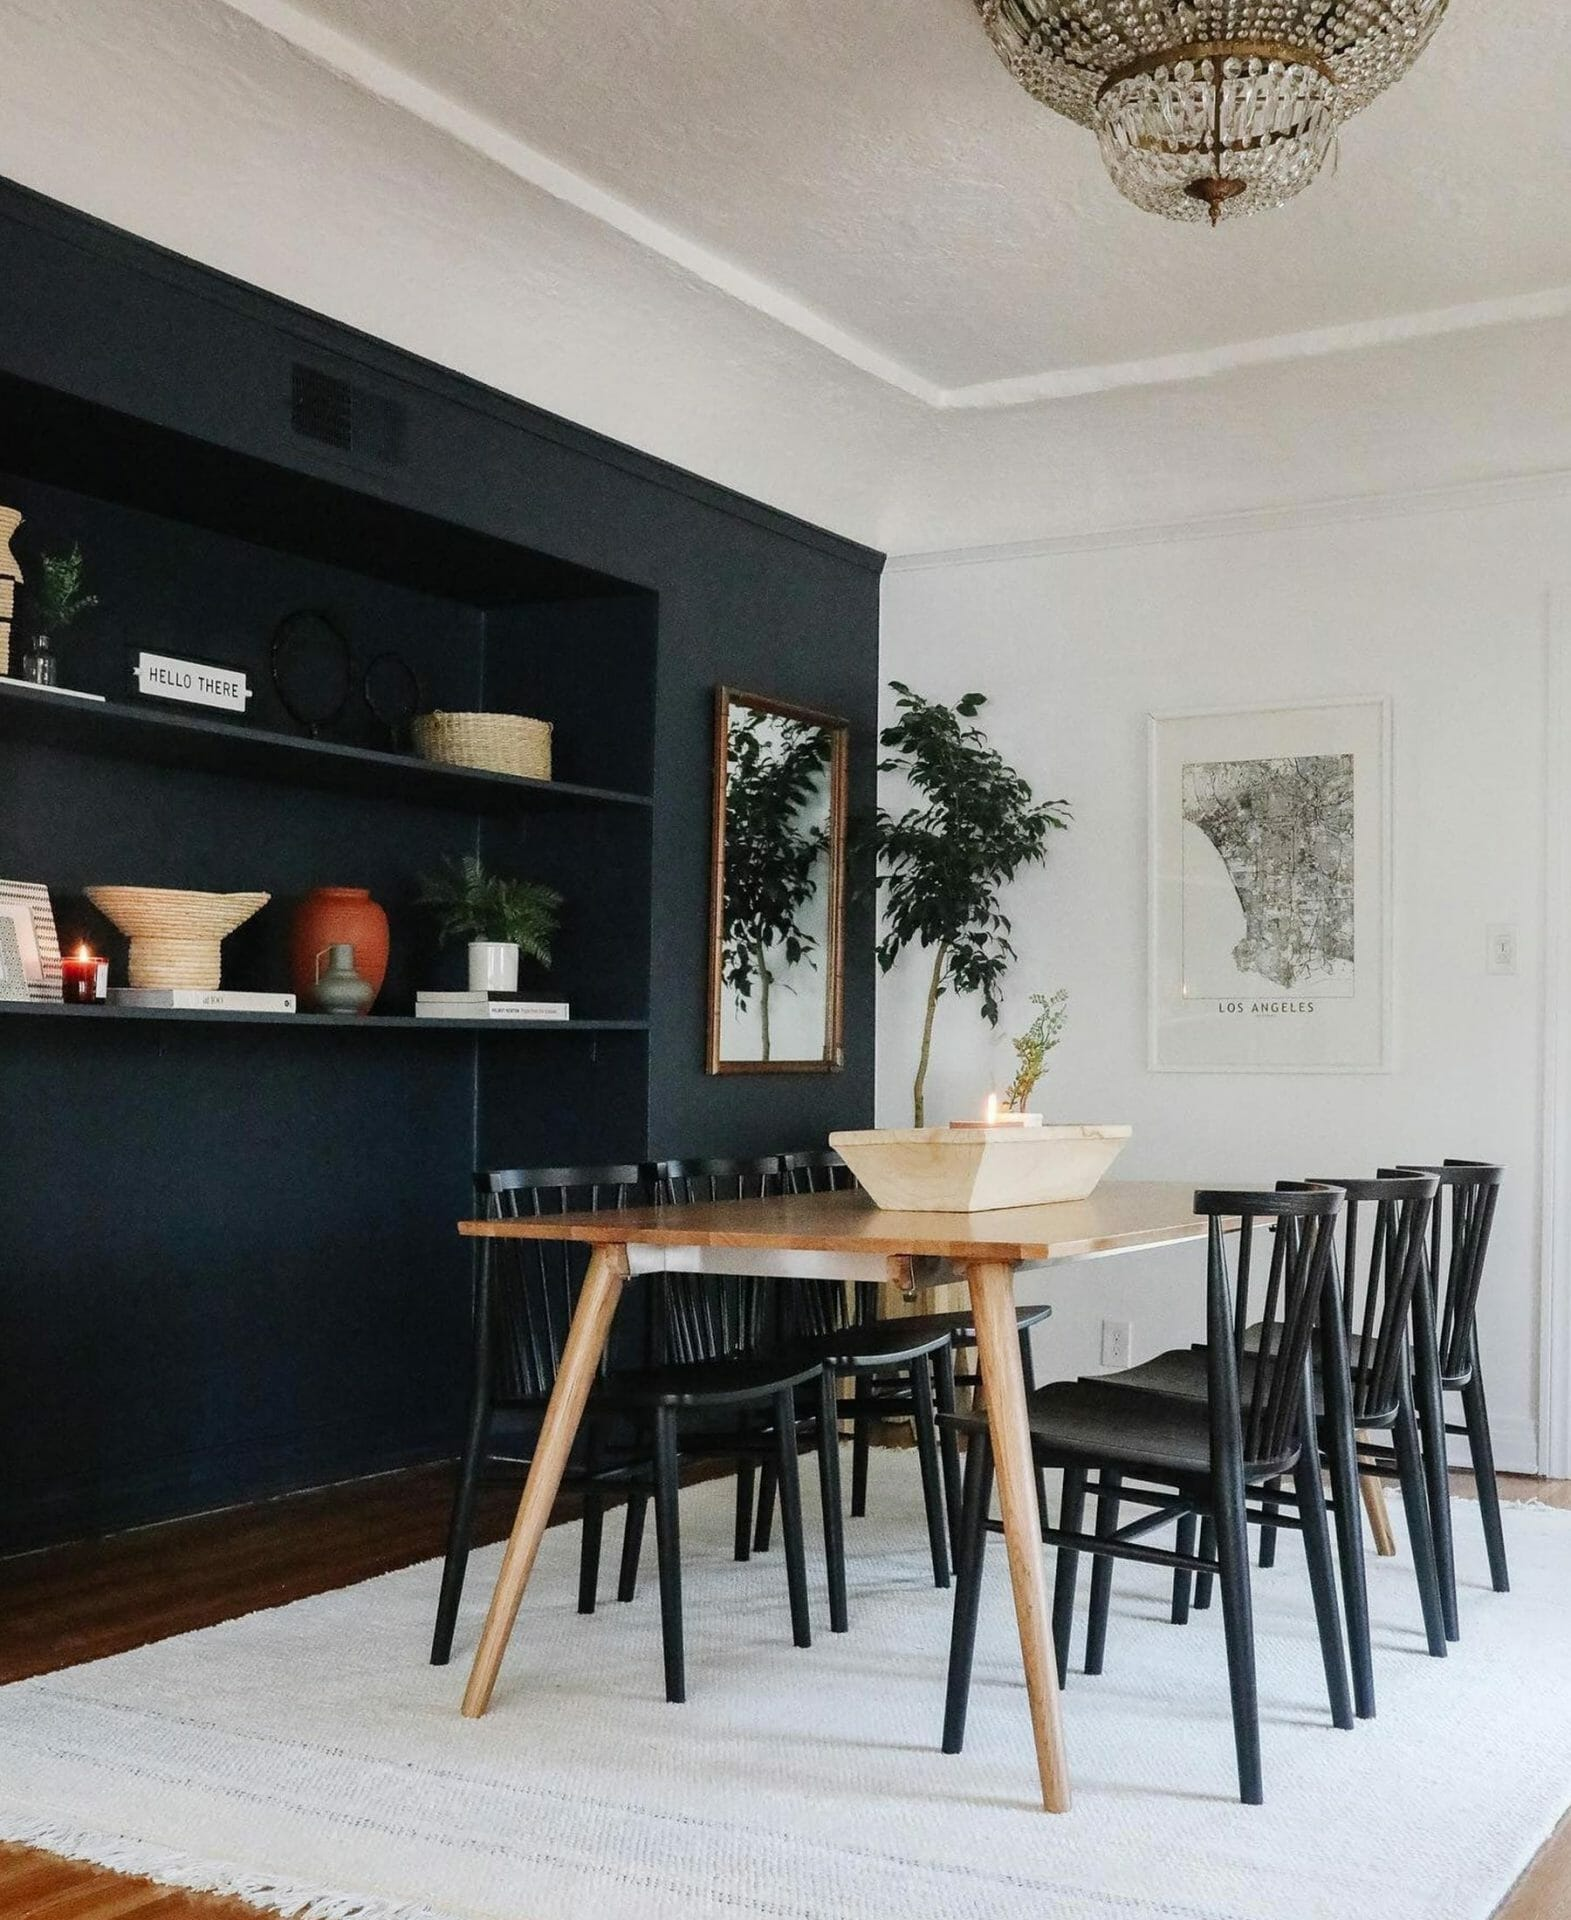 A dining room features neutral tones and a black accent wall.